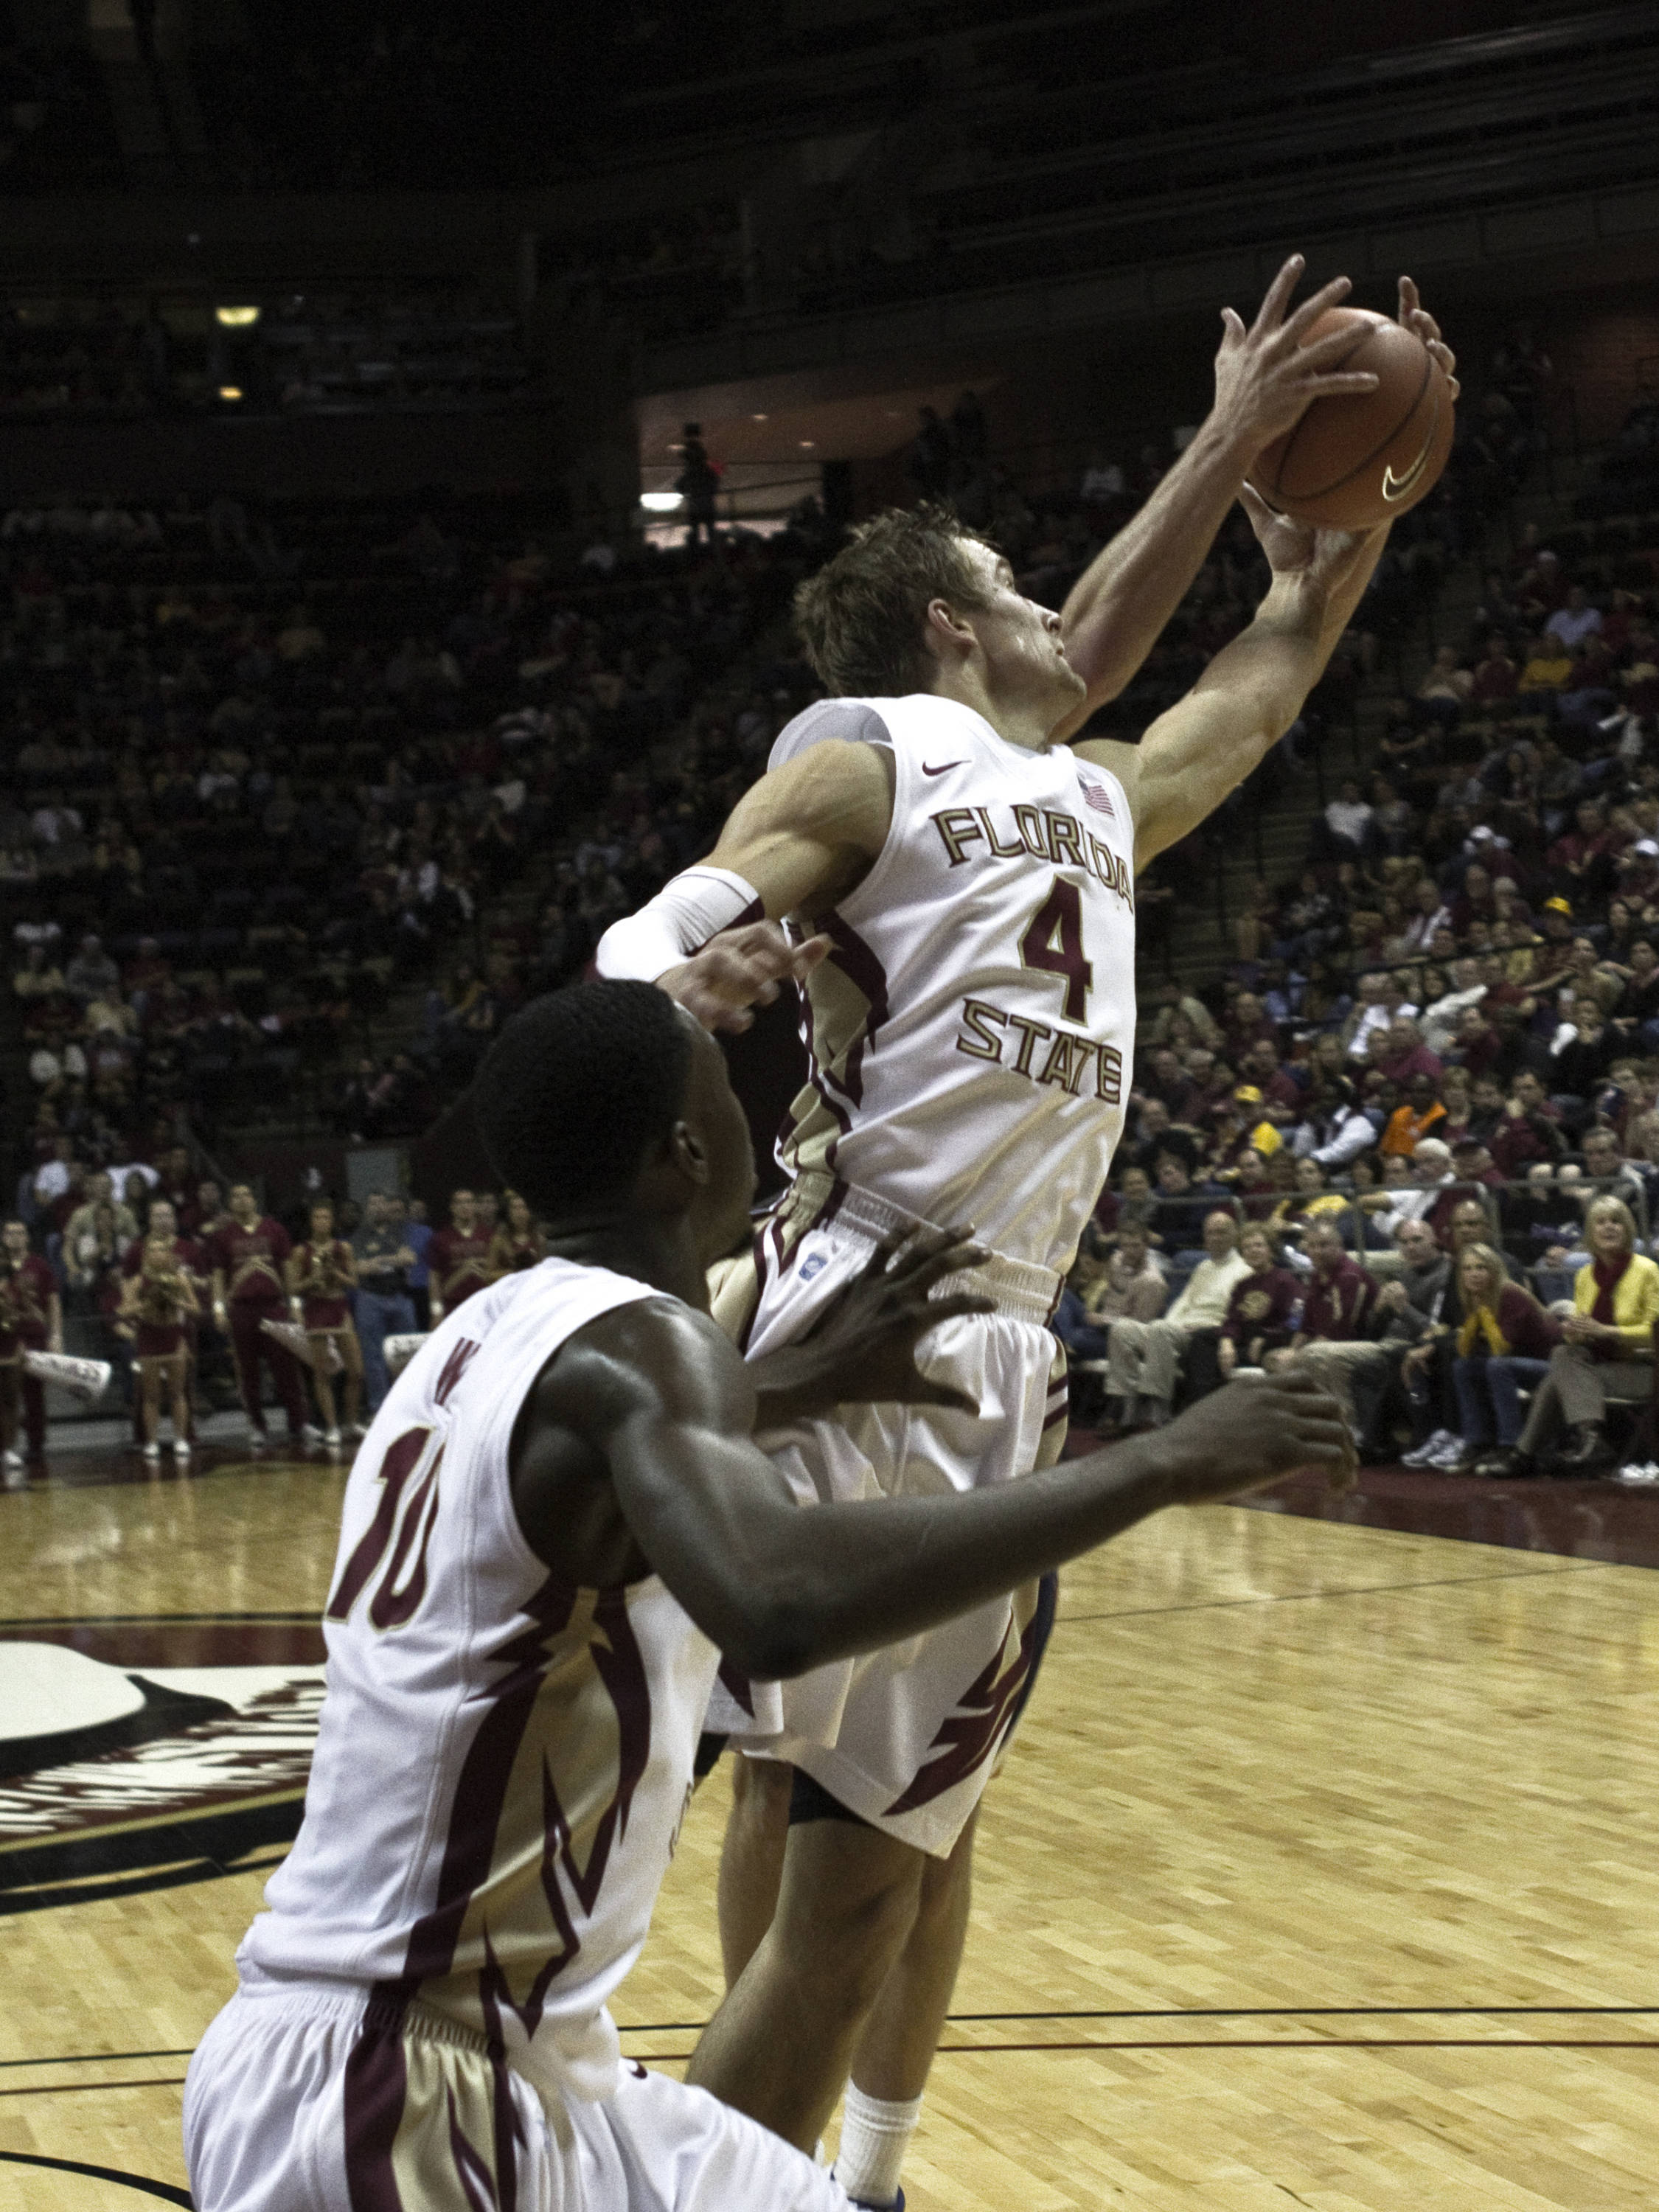 FSU vs Virginia- 02//12/11 - Deividas Dulkys (4), Okaro White (10)